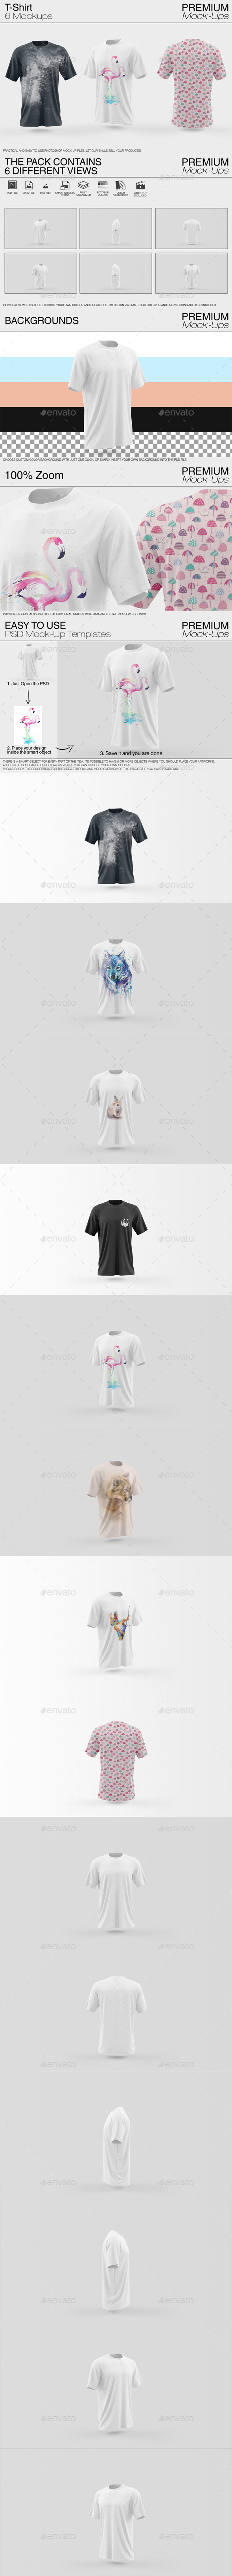 GraphicRiver Shirt Mockup Pack 20373179